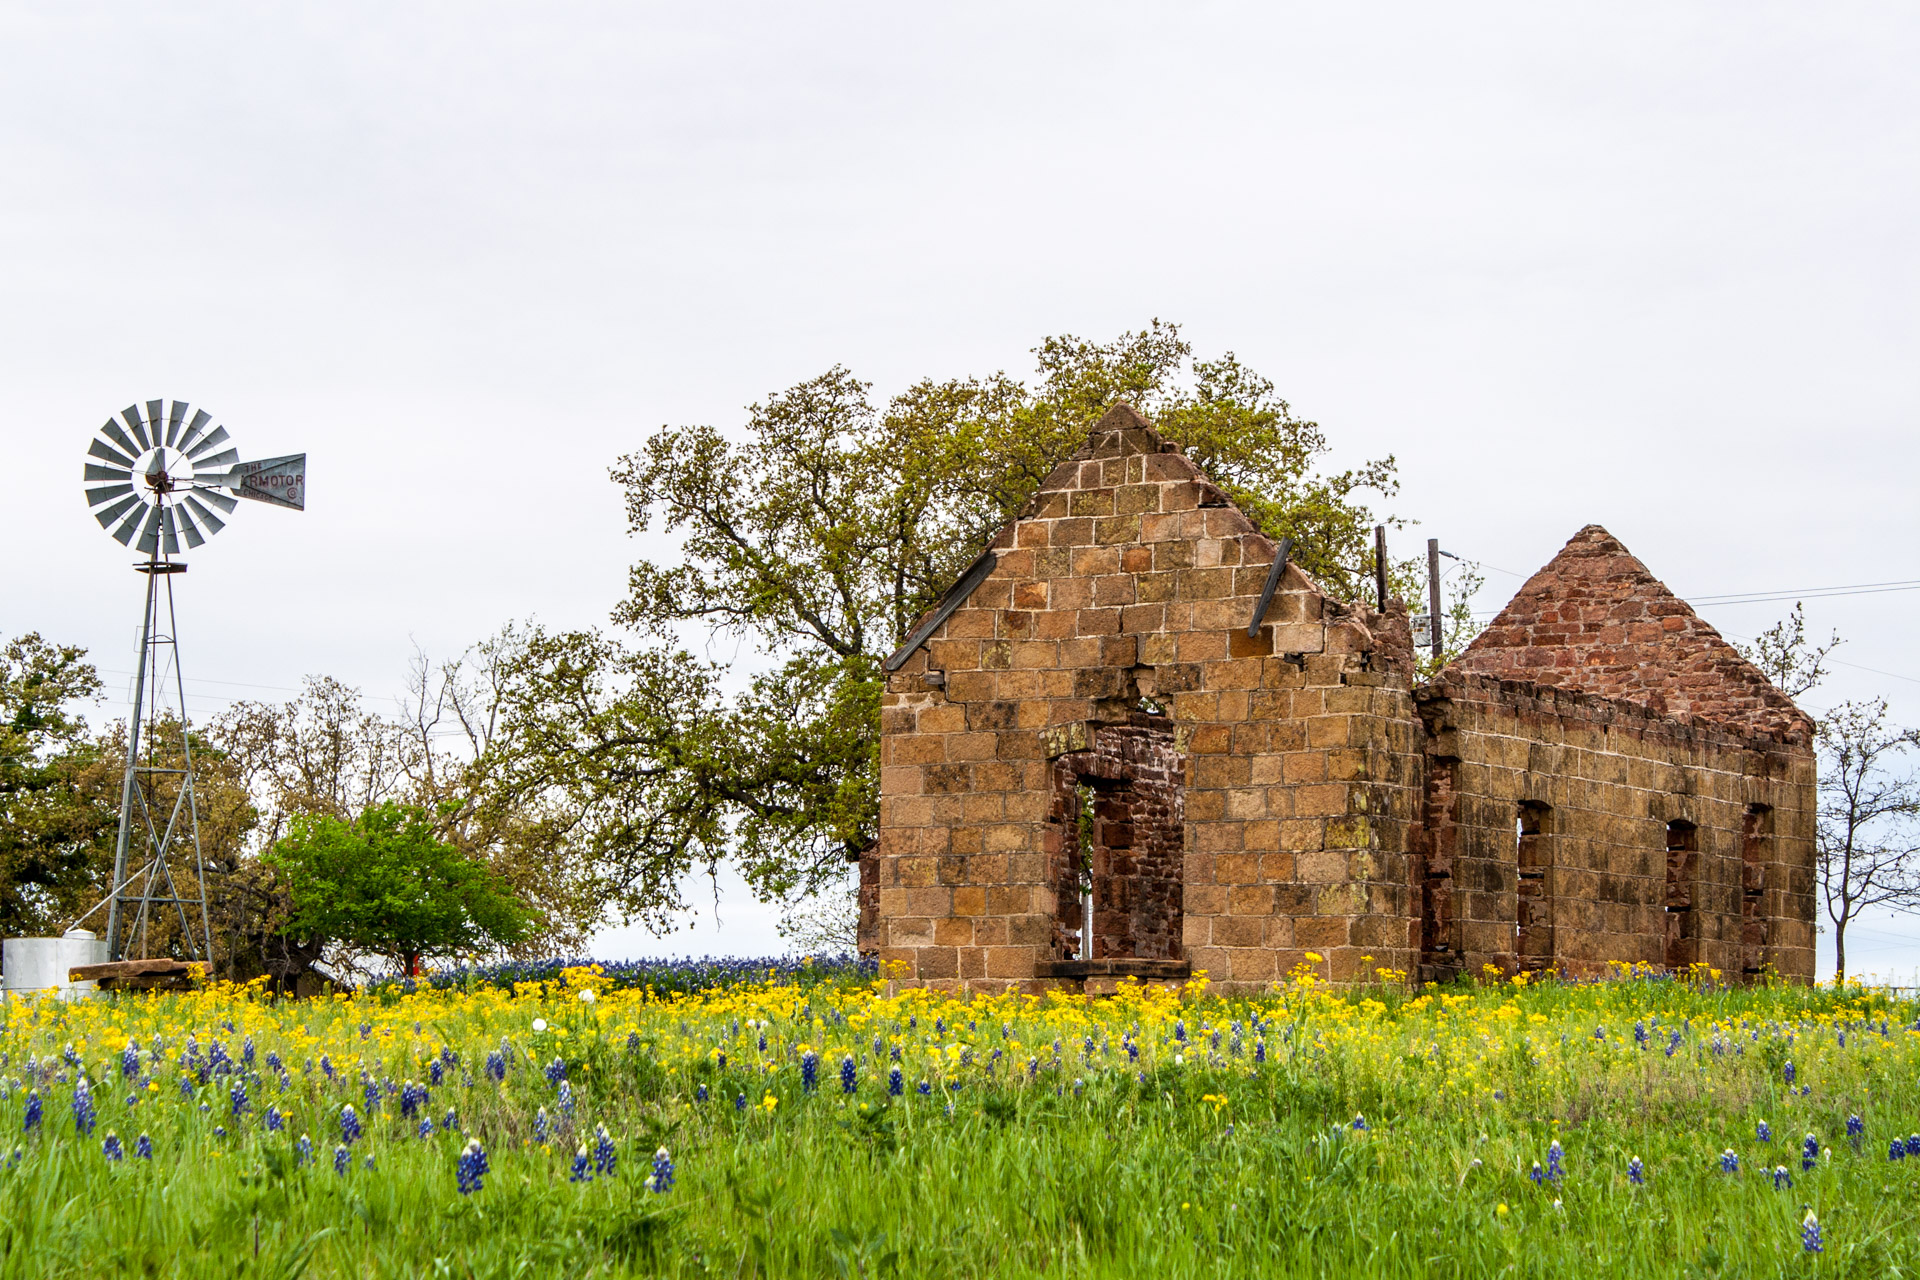 Pontotoc, Texas - A Stone Ruin With Bluebonnets (back far)